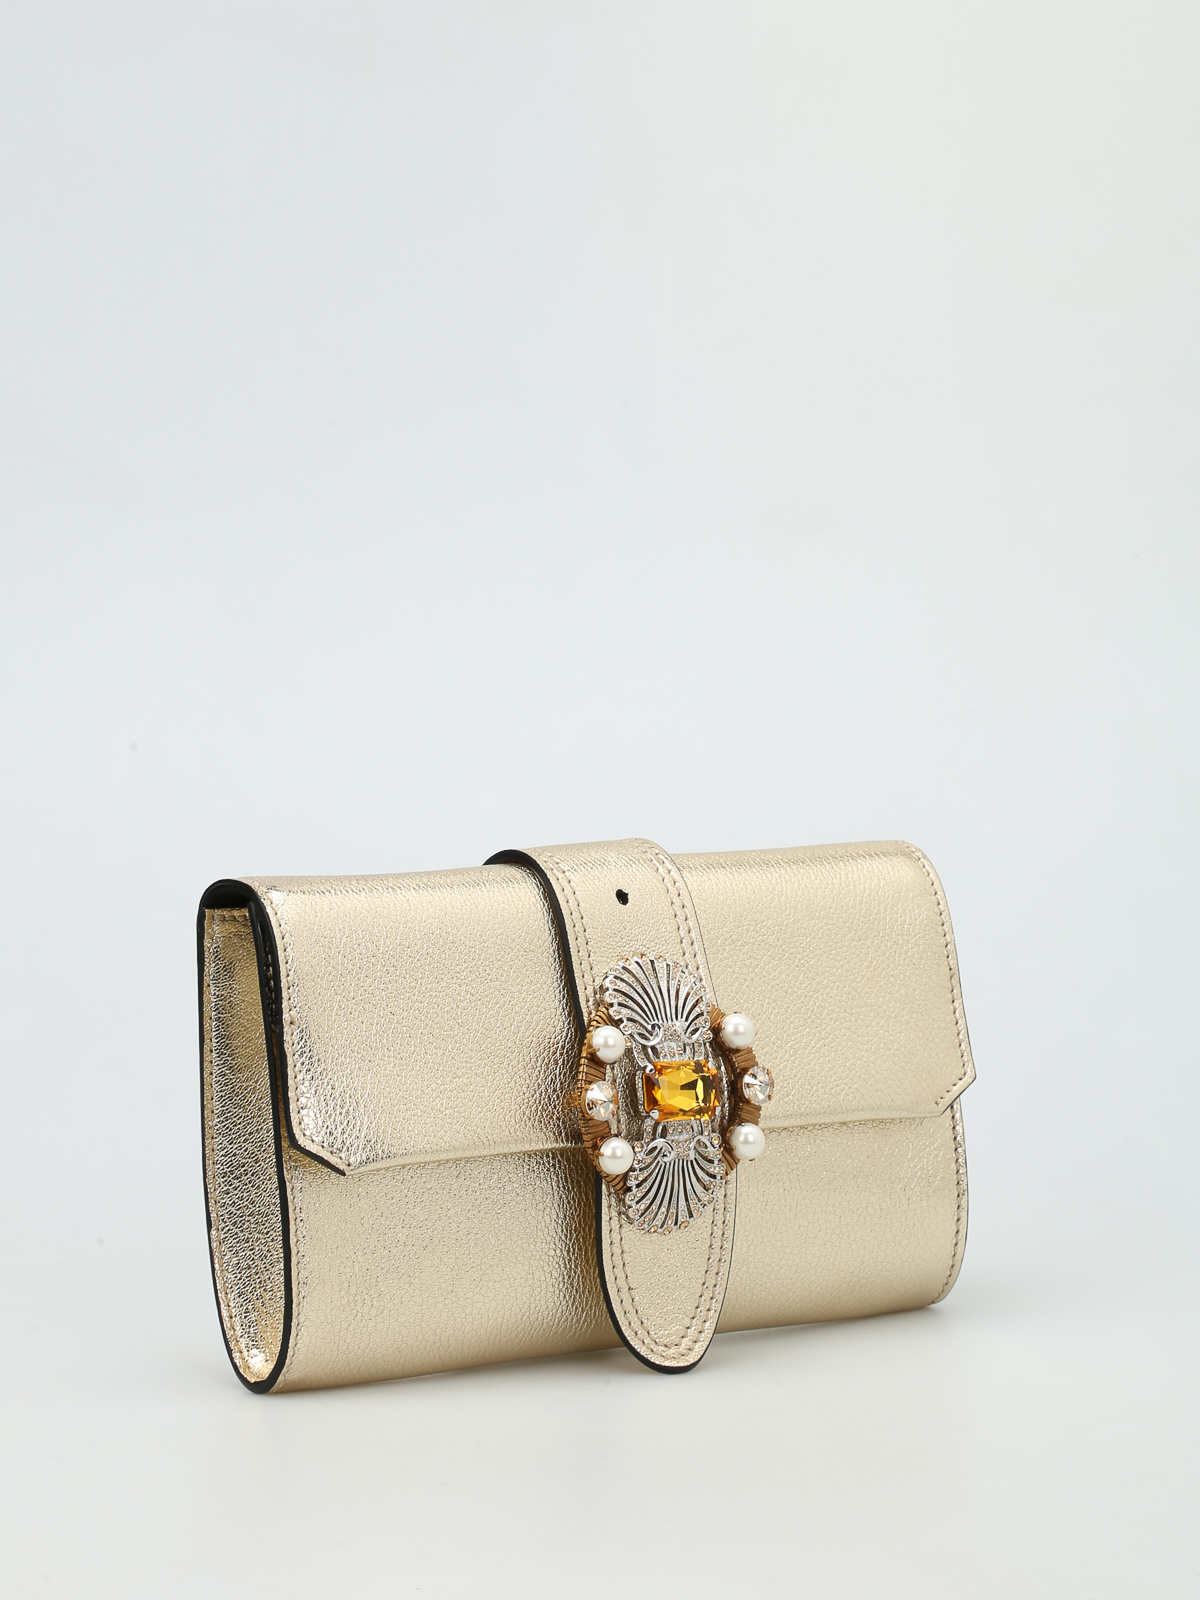 50c934a88b21 MIU MIU  cross body bags online - Jewel bag with chain shoulder strap